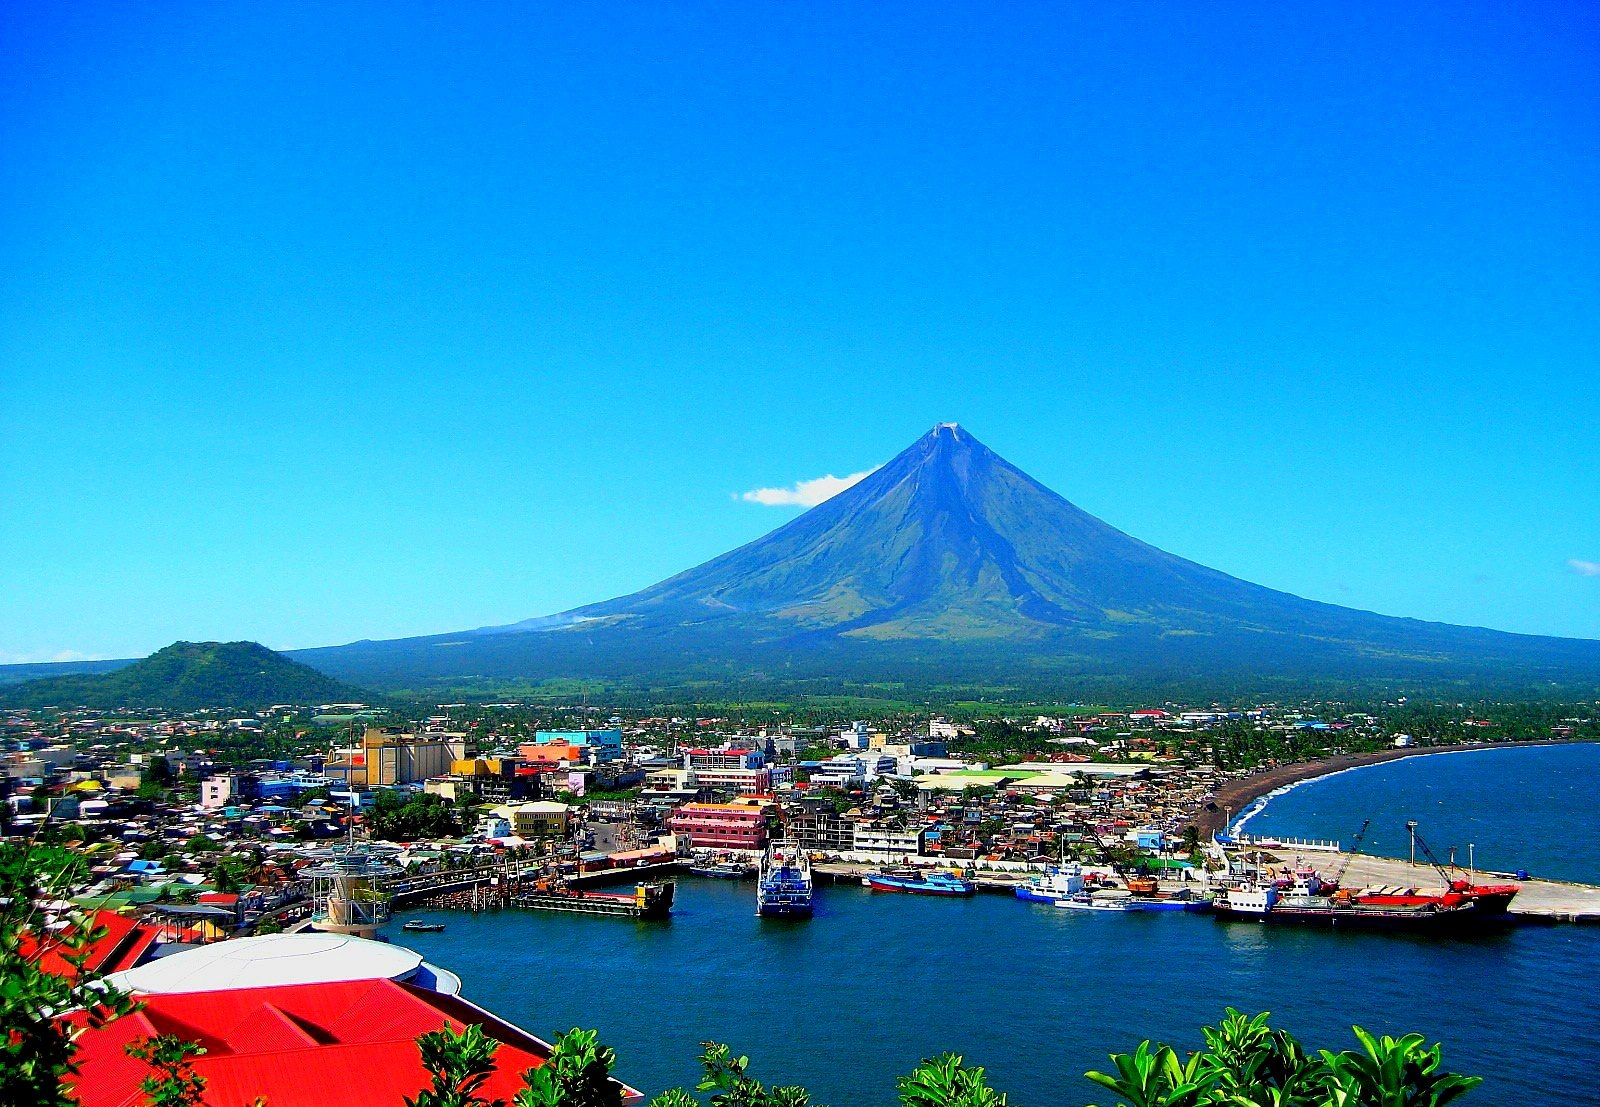 Pin Mayon Volcano Luzon Islands Philippines Widescreen Wallpaper on 1600x1107